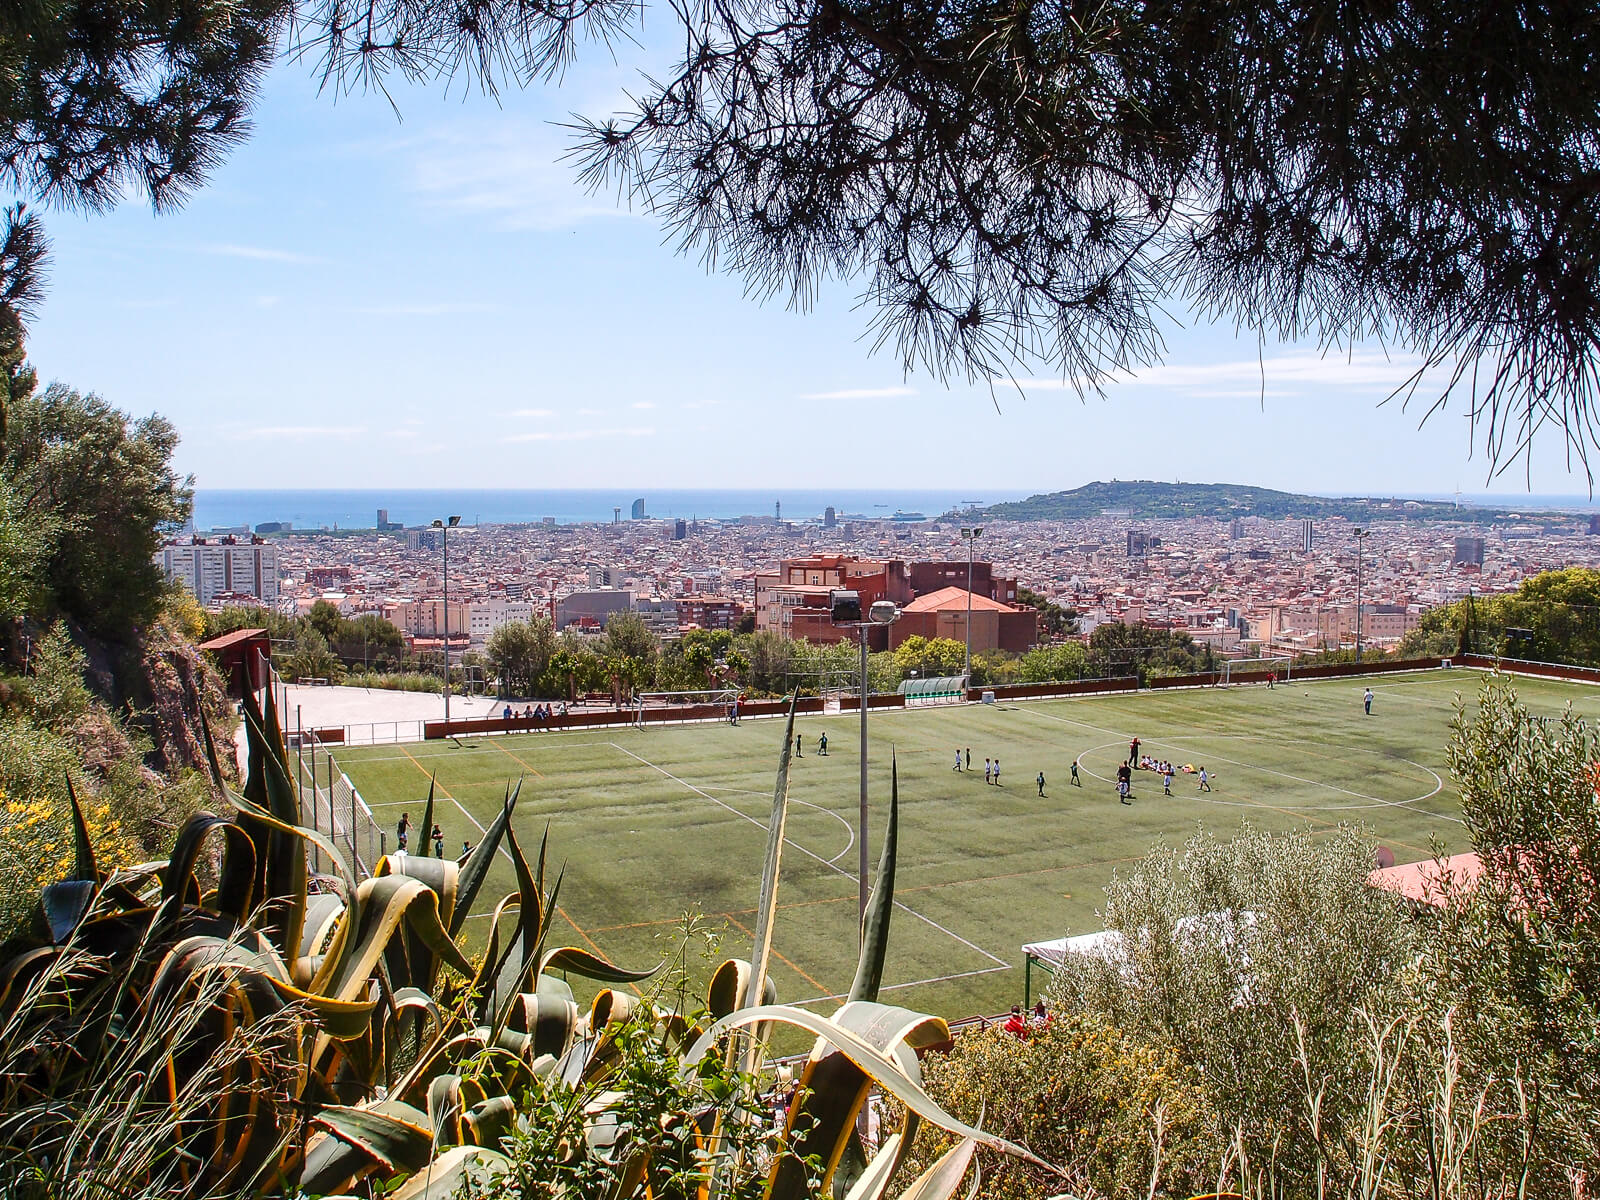 Barcelona Street Photography city panorama, green football fileld, park Montjuic mountain, passeig auigues